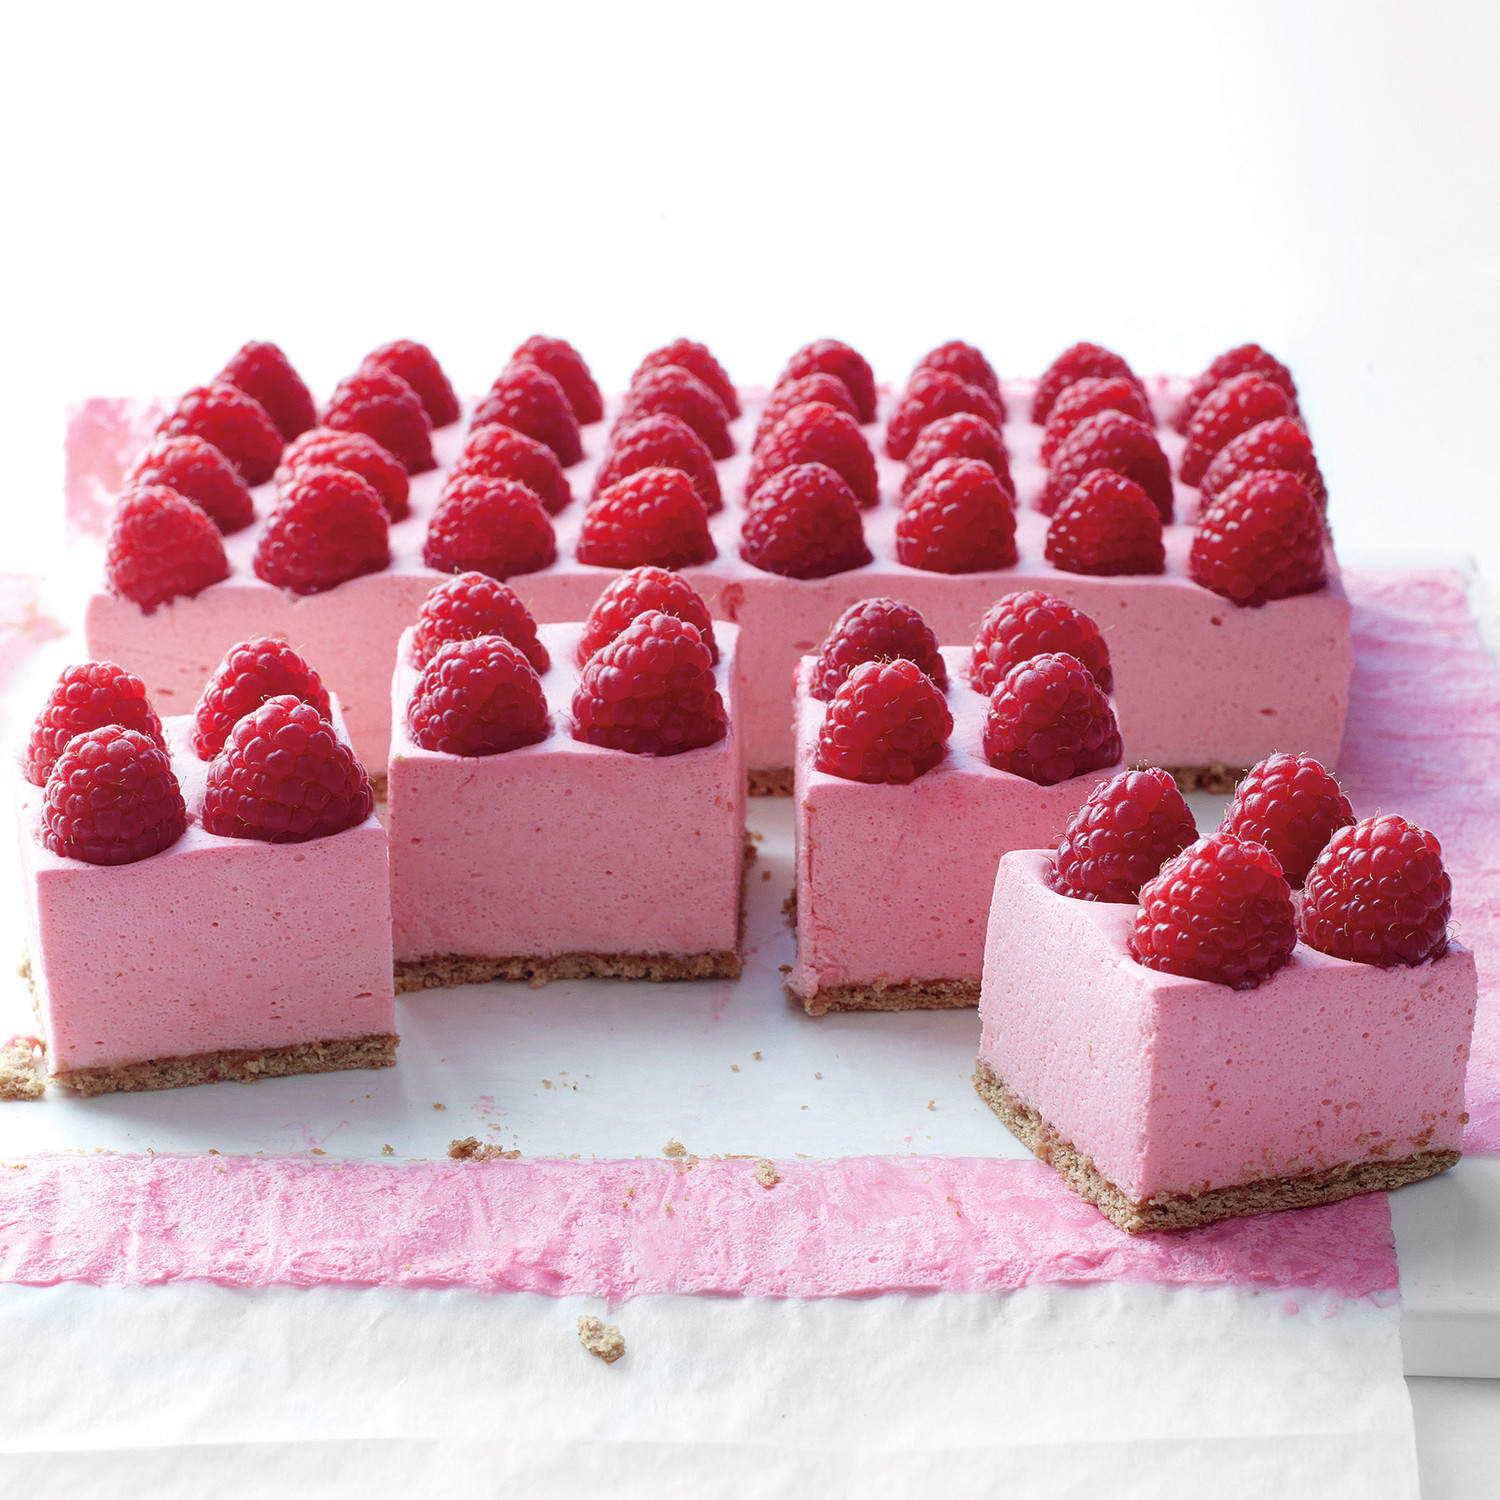 Raspberry mousse recipe without gelatin for Raspberry miroir